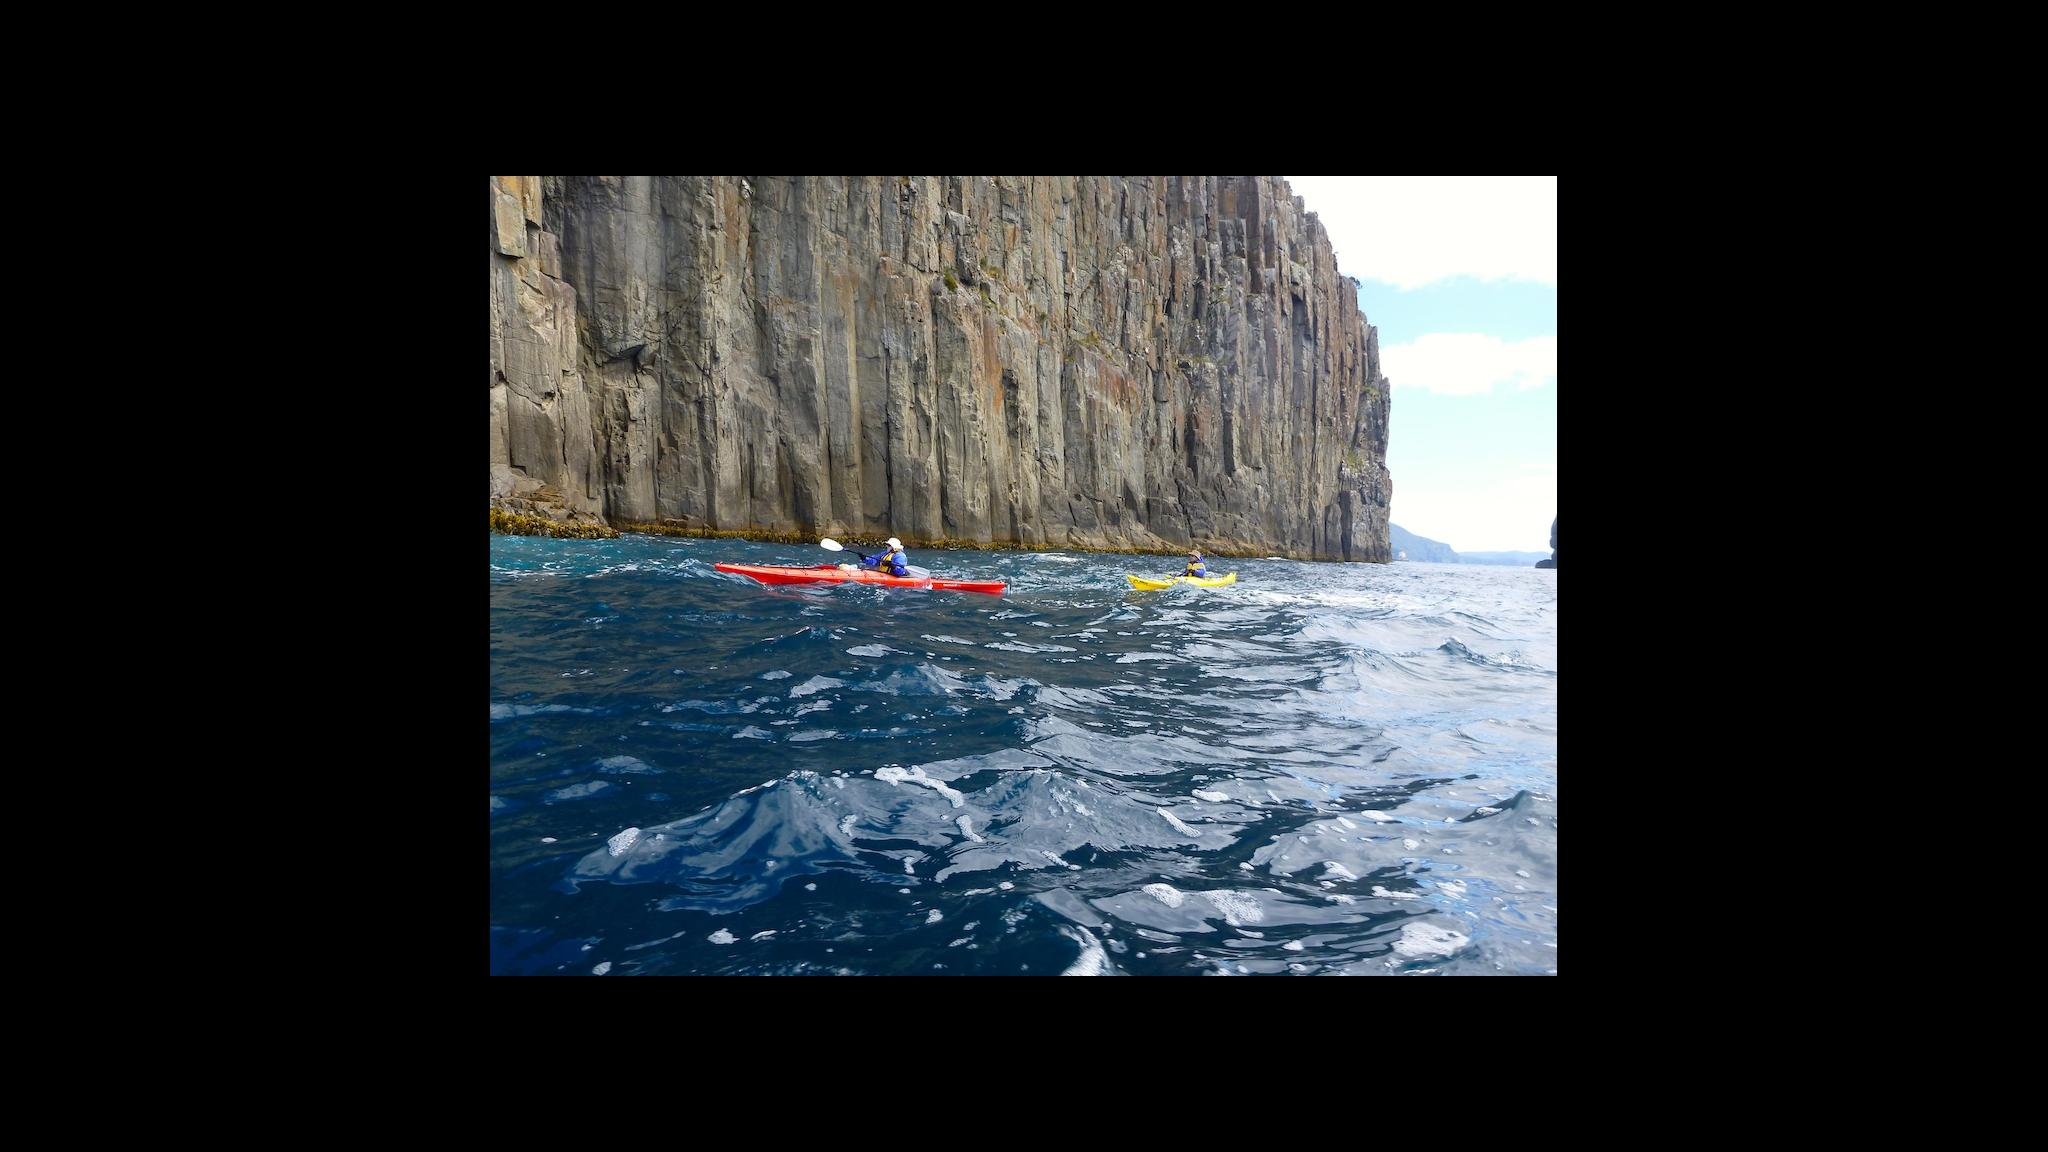 Roaring 40s Kayaking - Advanced sea kayaking skills lessons near cliffs Hobart Tasmania